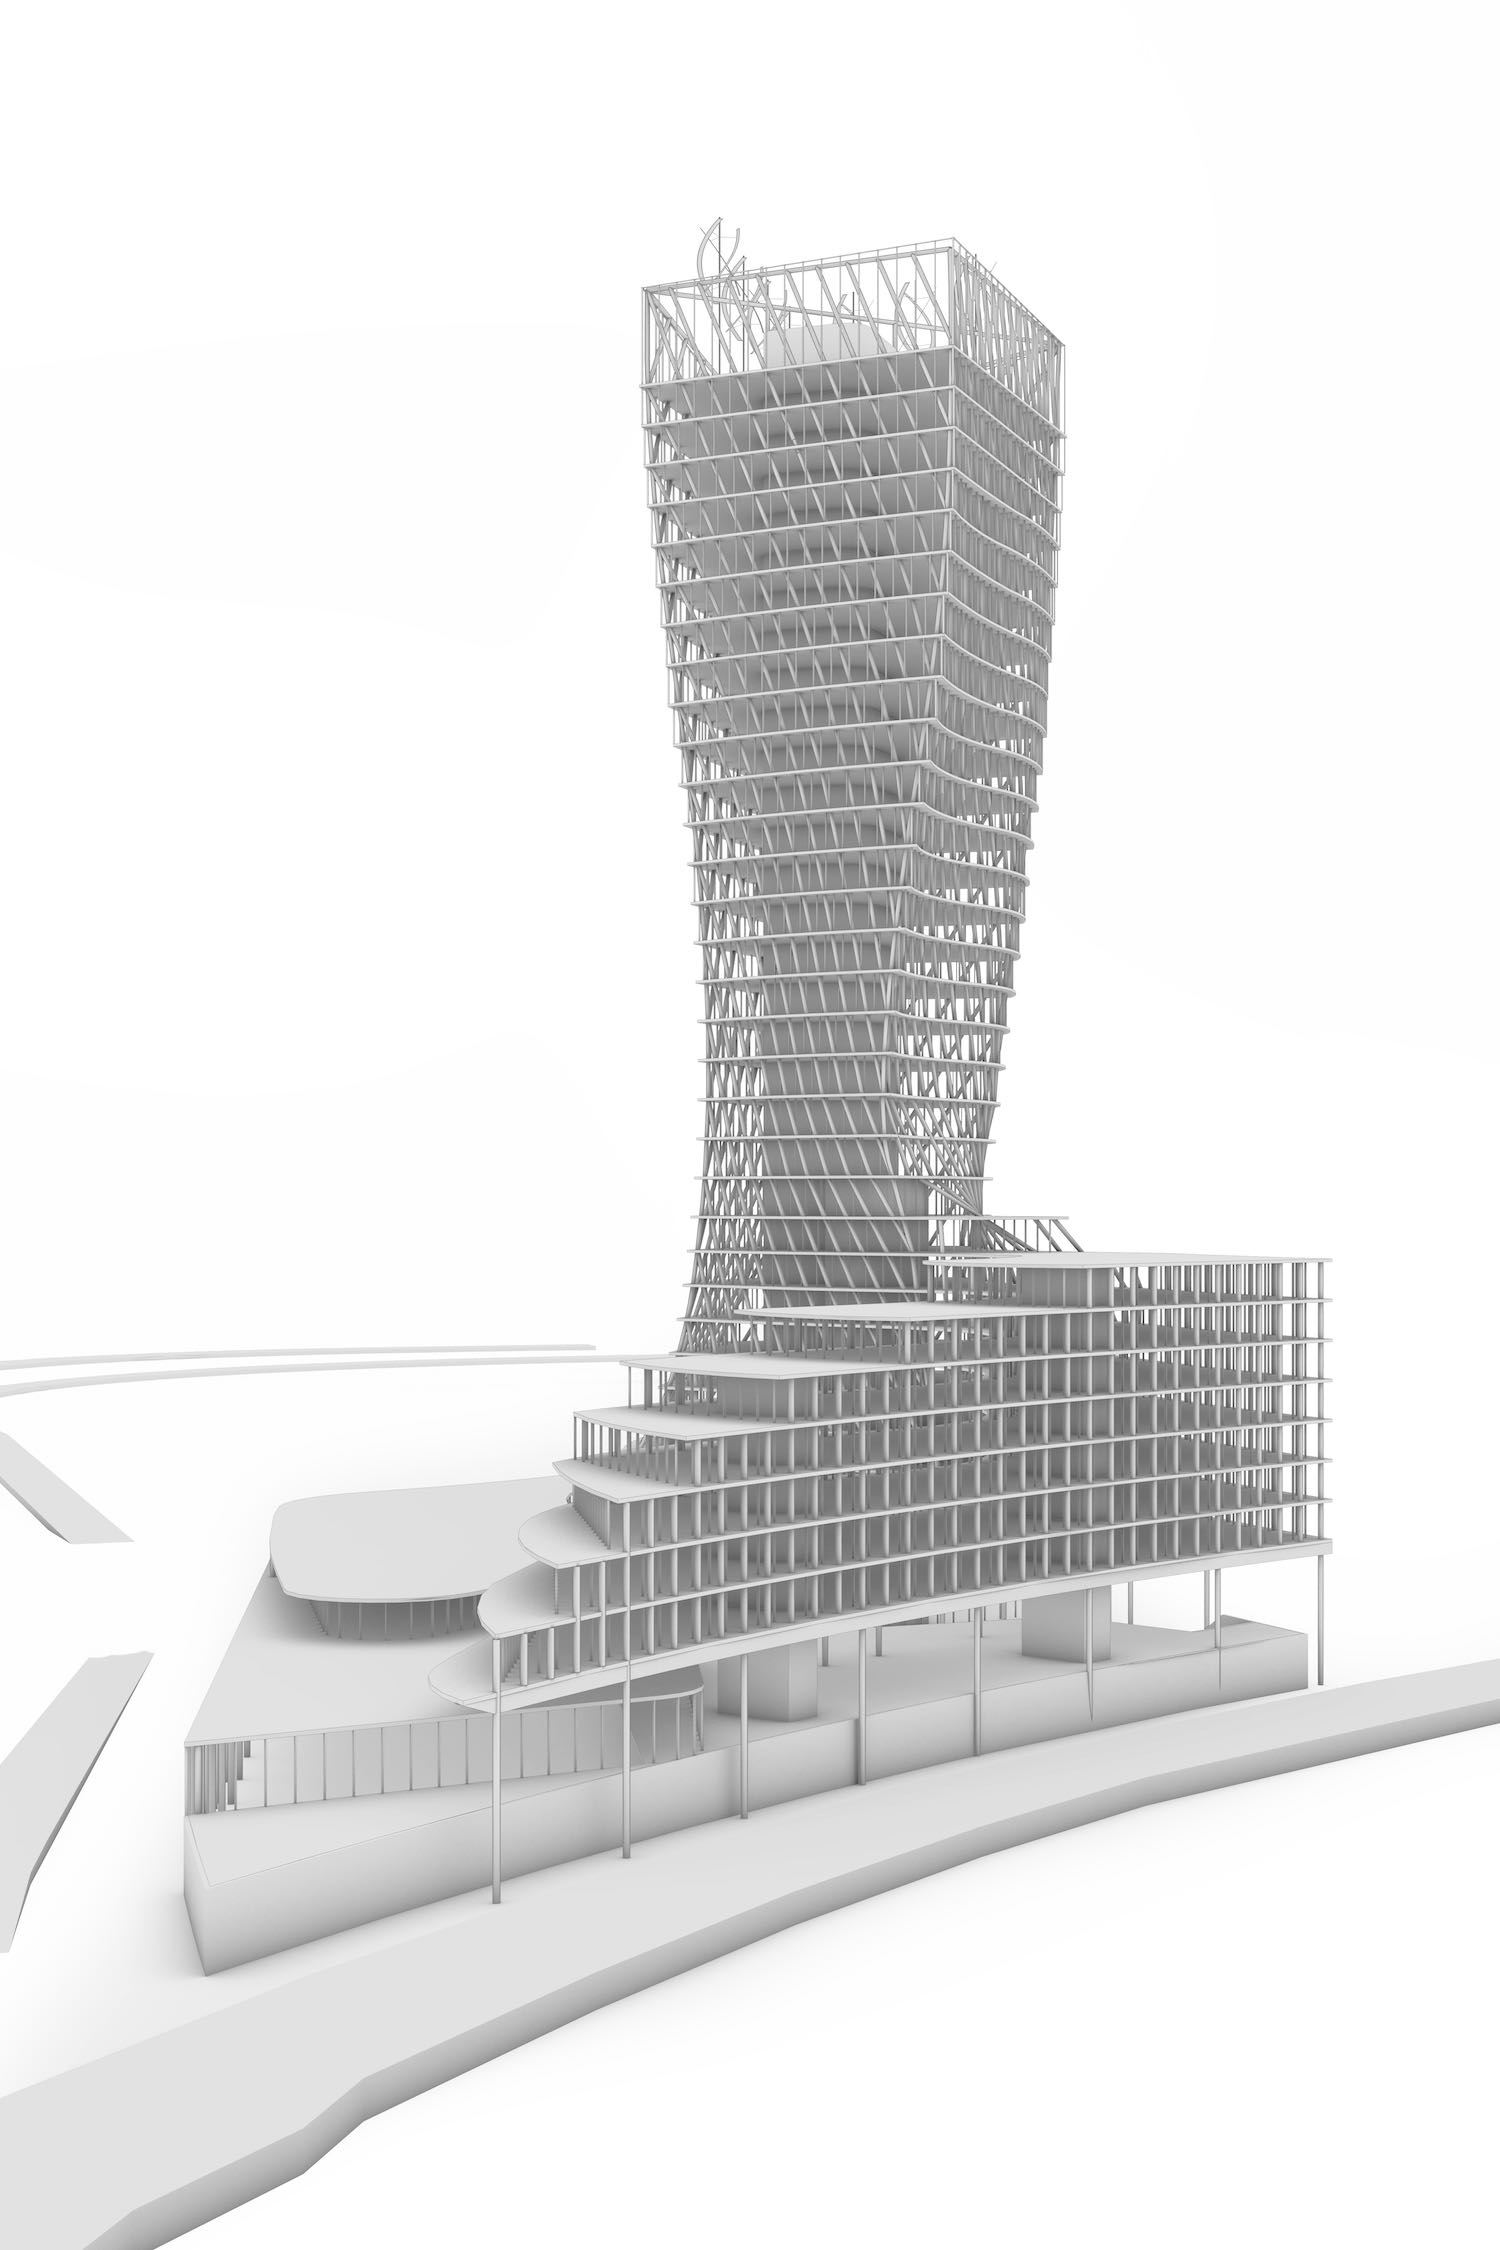 L'arbre de vie, a mixed-use tower in France designed by OXO Architectes - Manal Rachdi